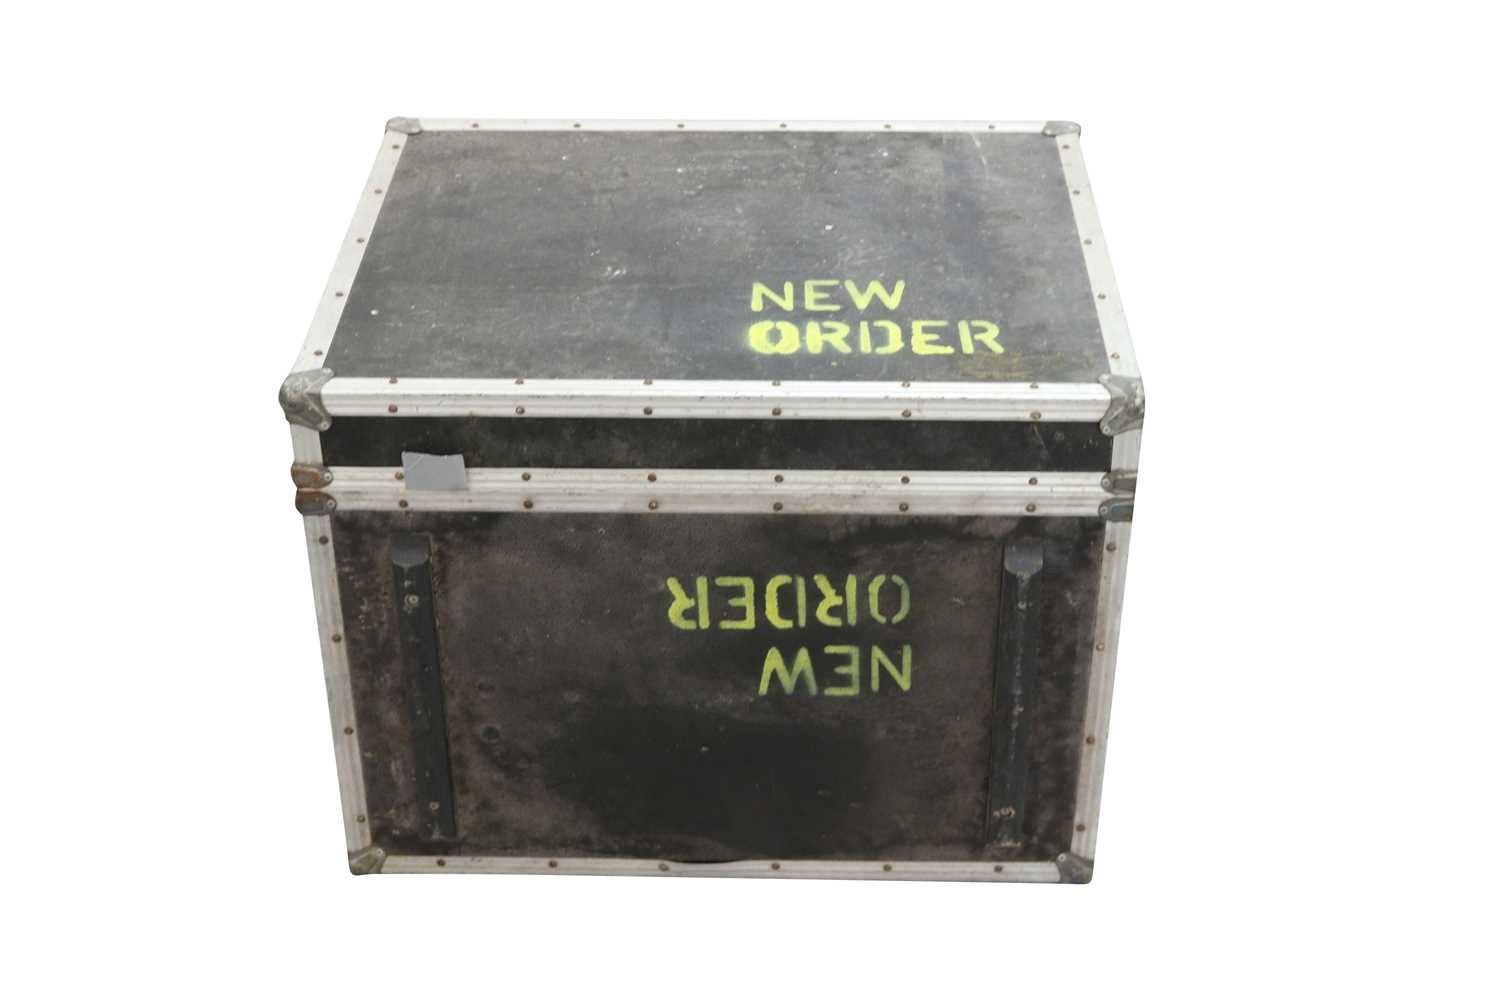 NEW ORDER BASS SPEAKERS FLIGHT CASES x5 - Image 3 of 7